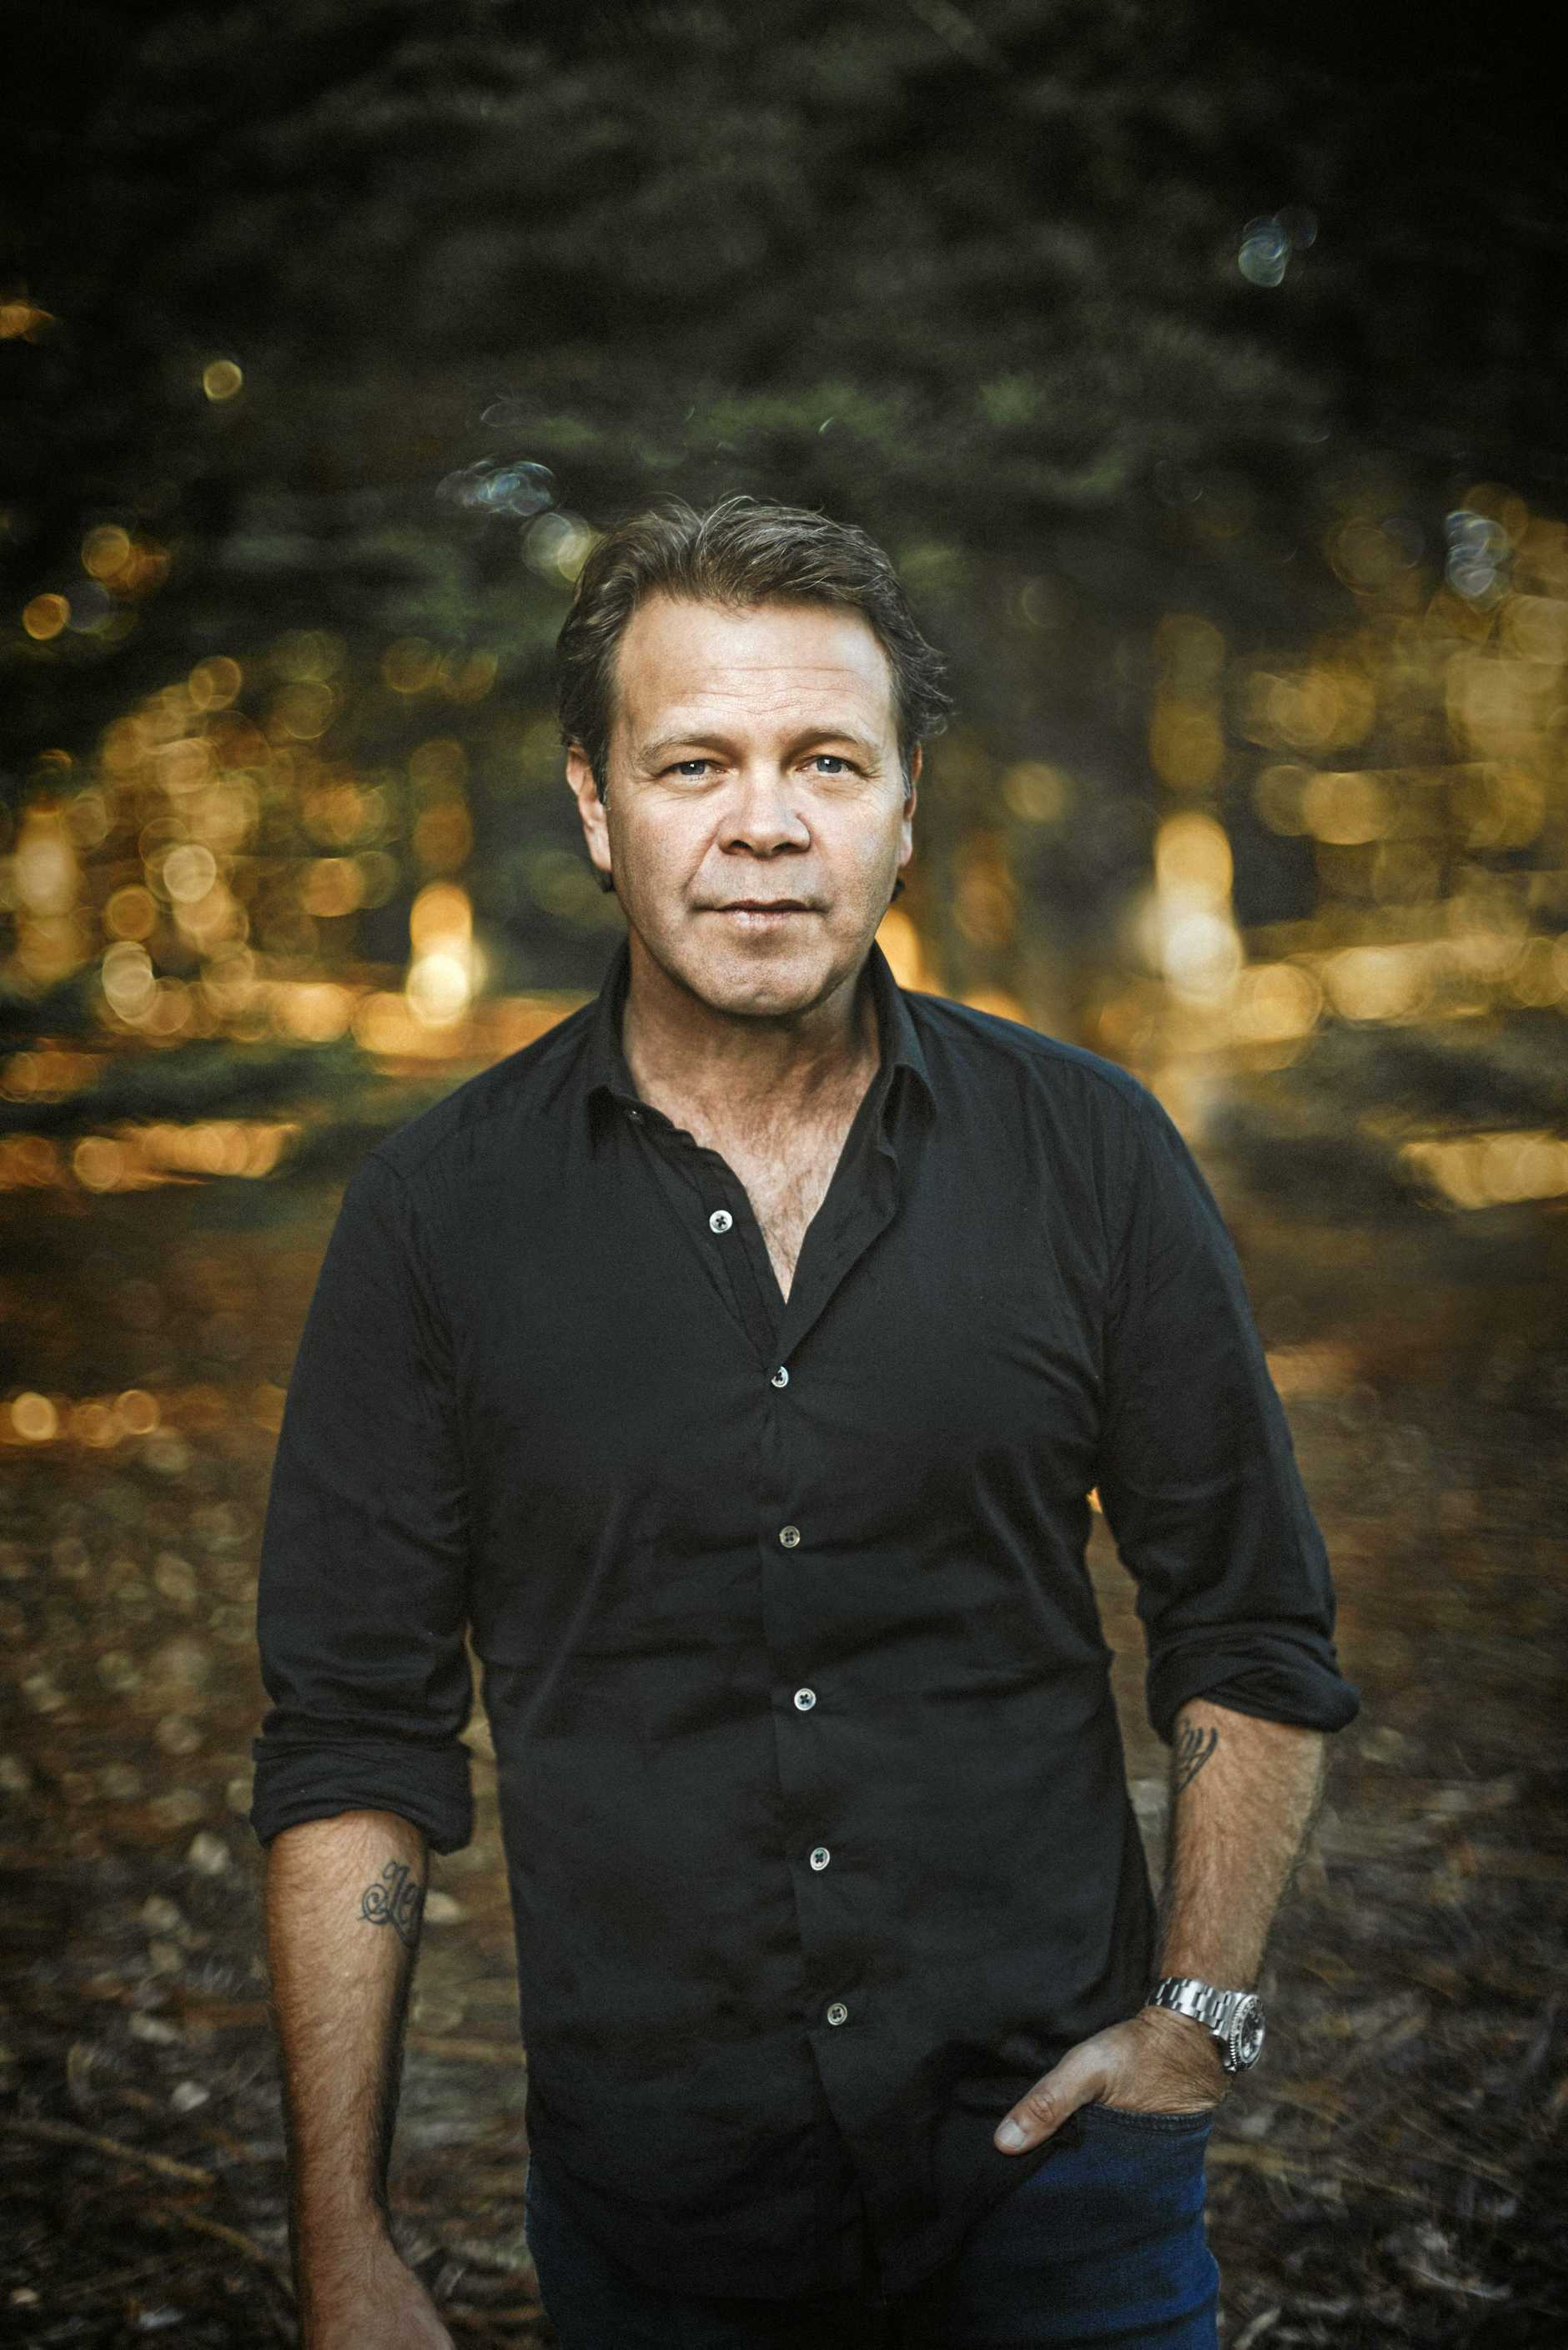 Country music legend Troy Cassar-Daley releases his Greatest Hits double CD today.